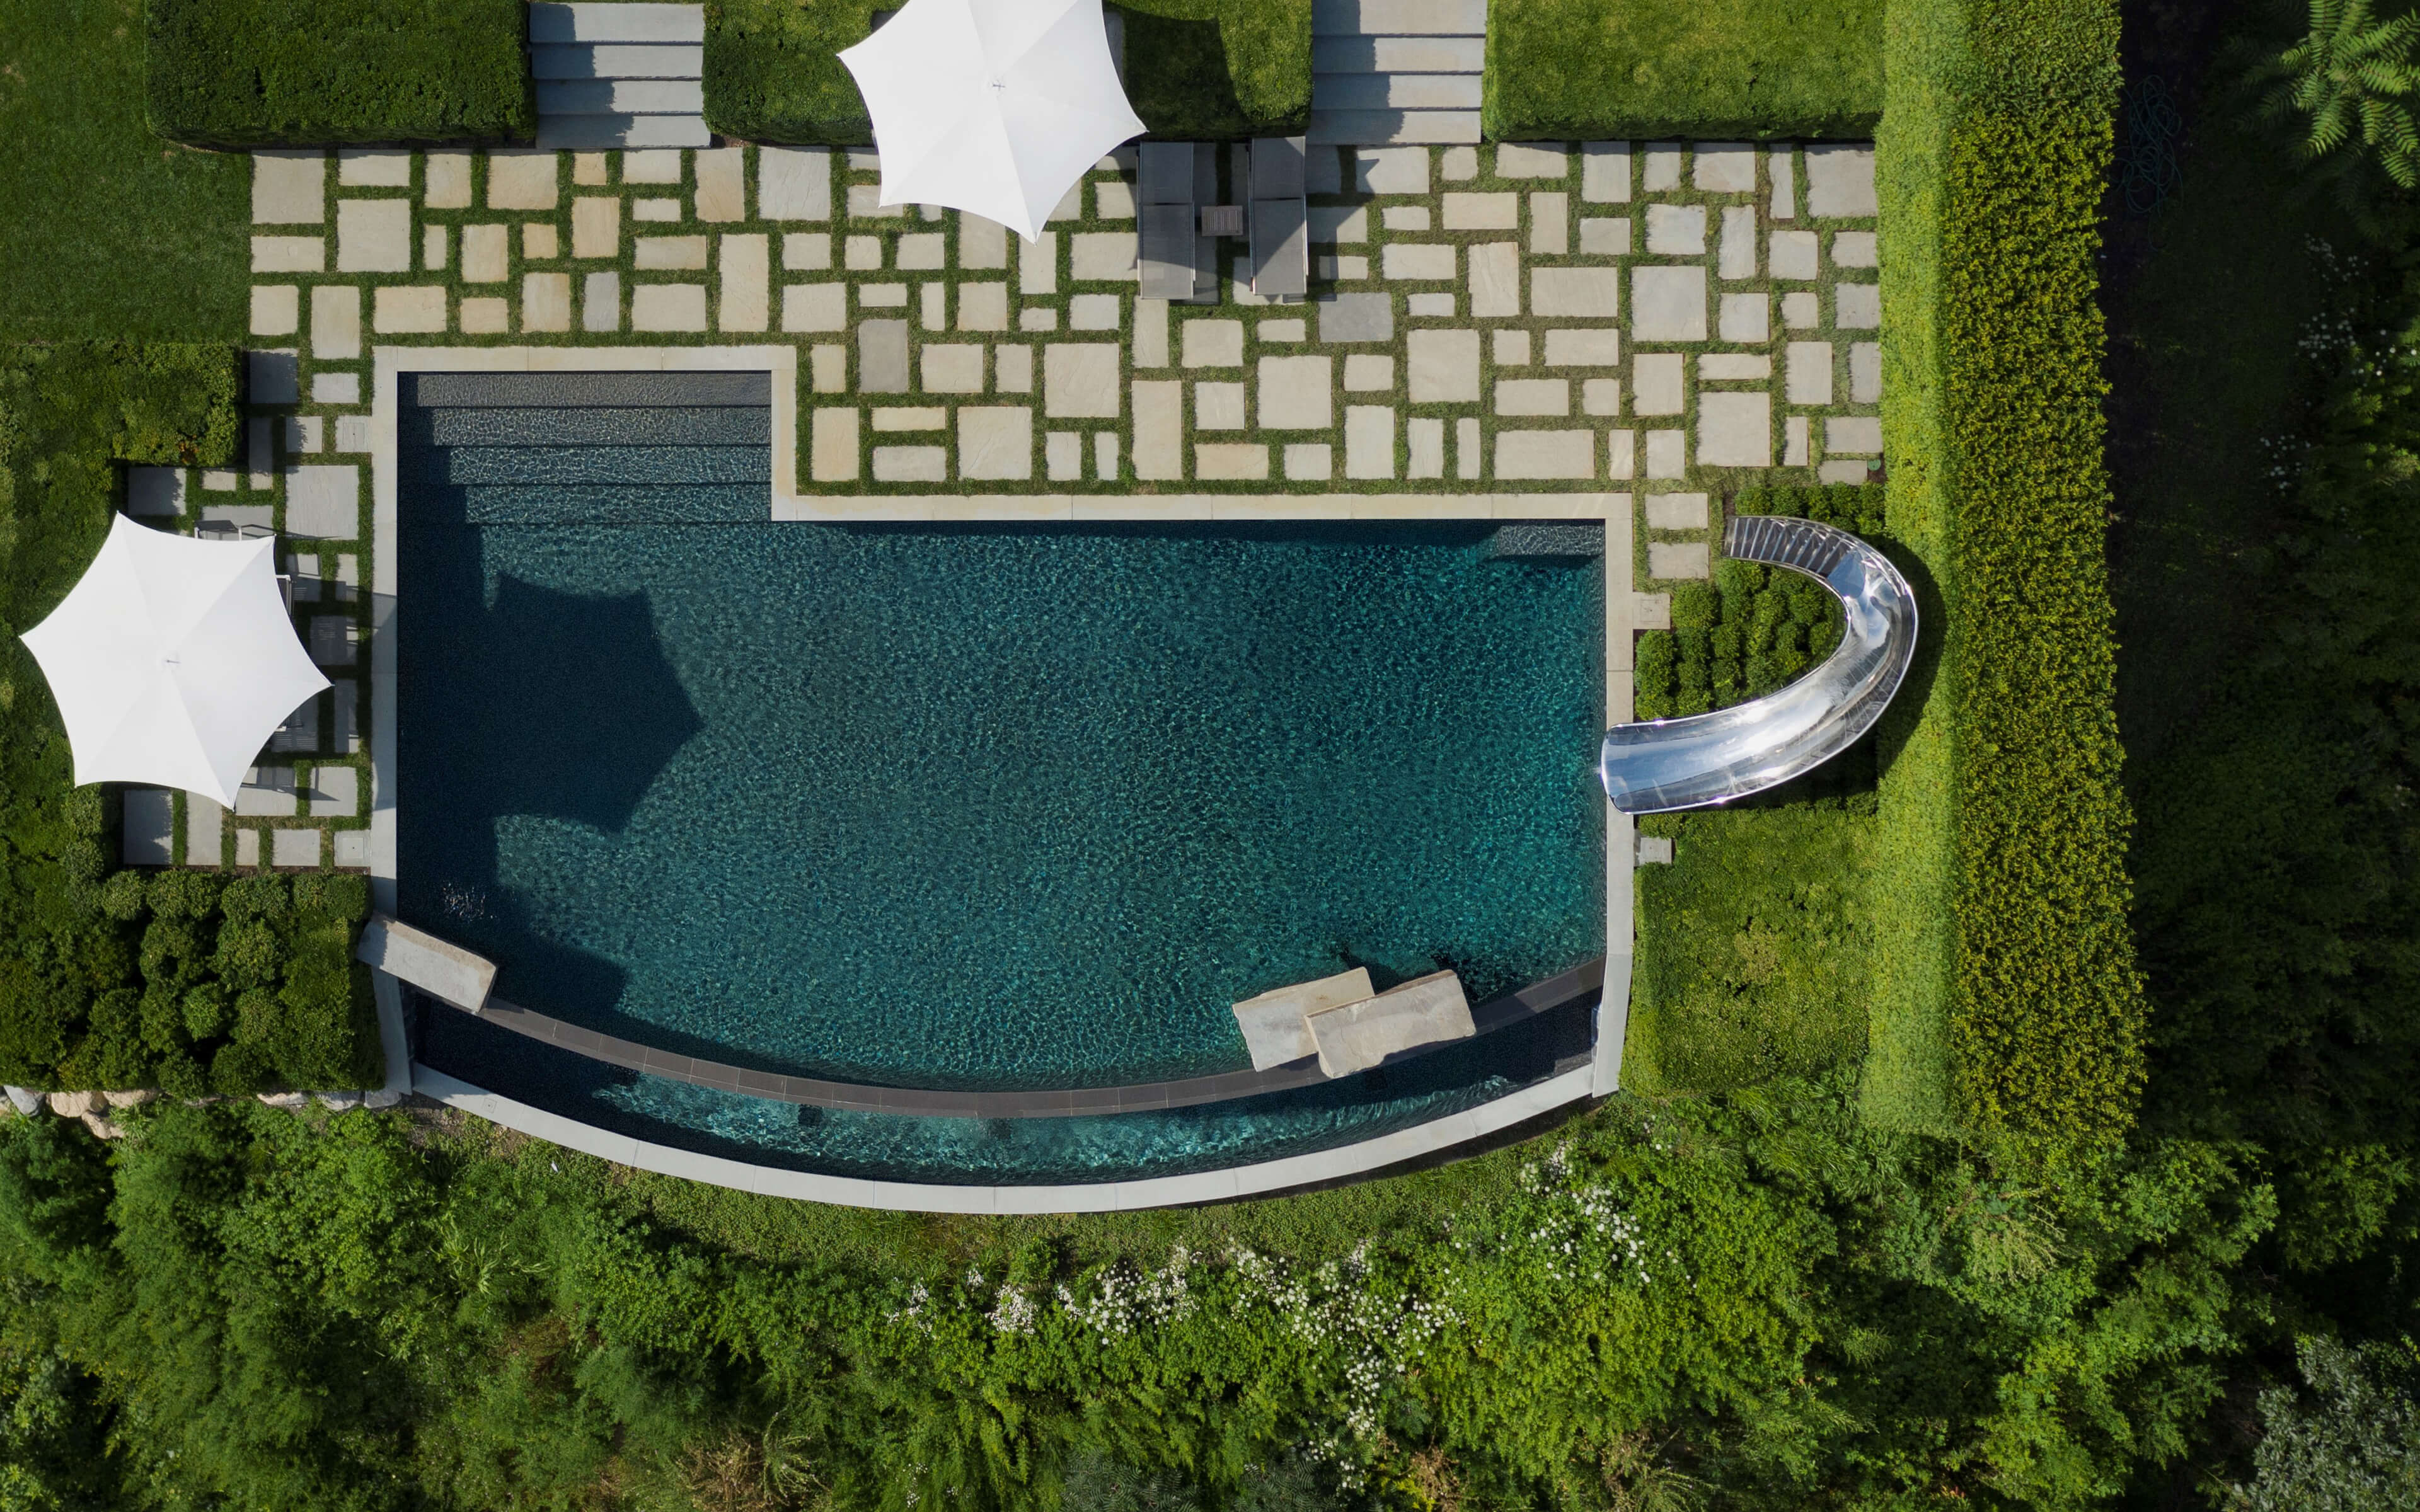 Birds eye view of family pool with pool slide